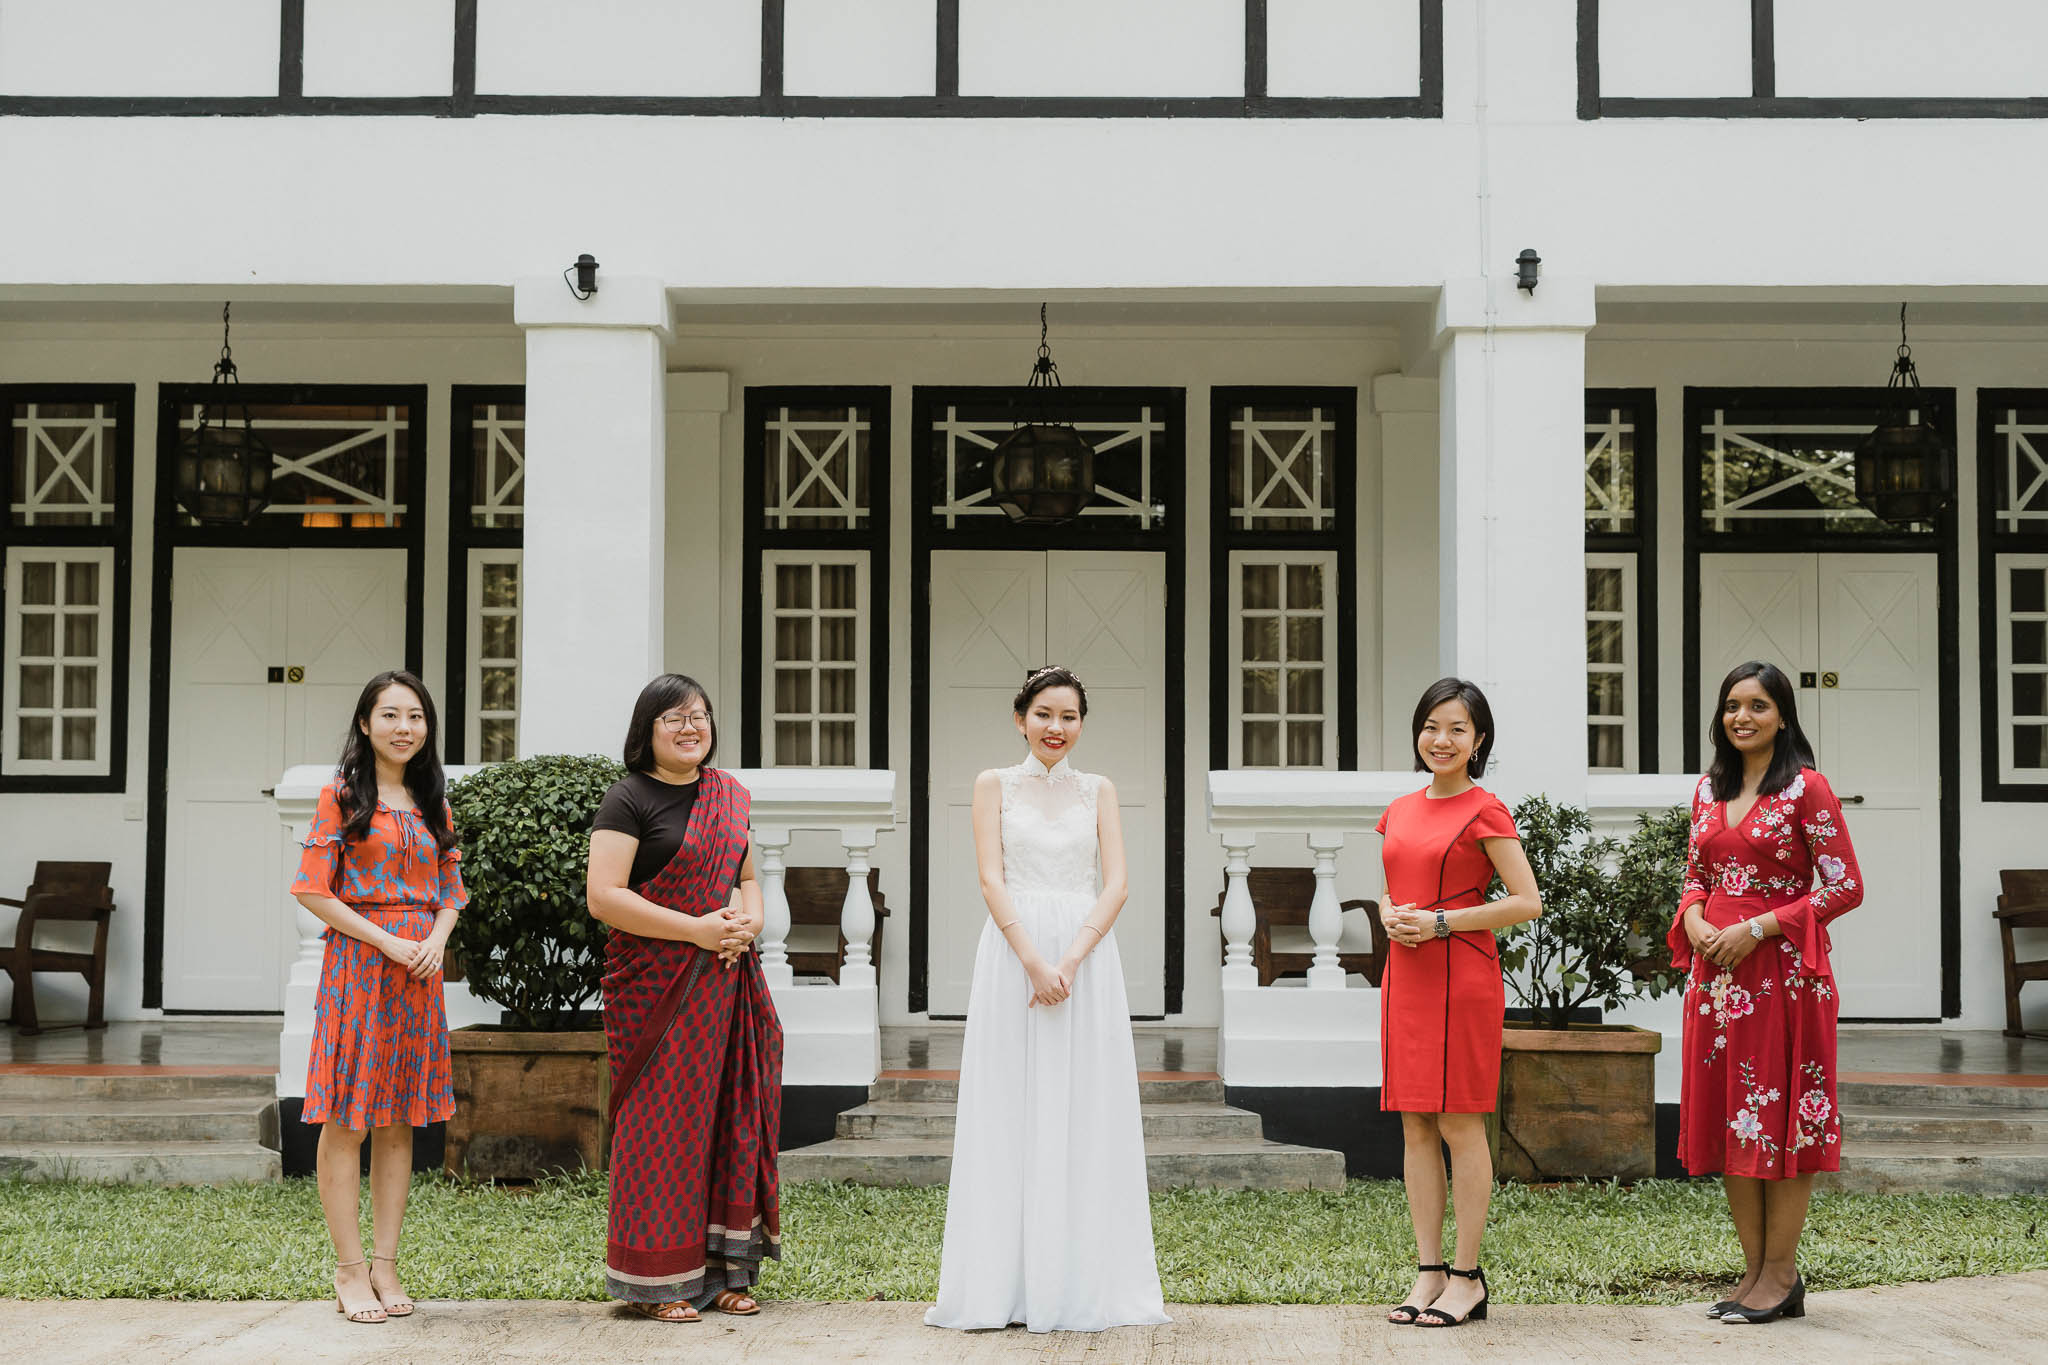 singapore-wedding-photographer-madethese-laremy-priscilla-wedding-064.jpg